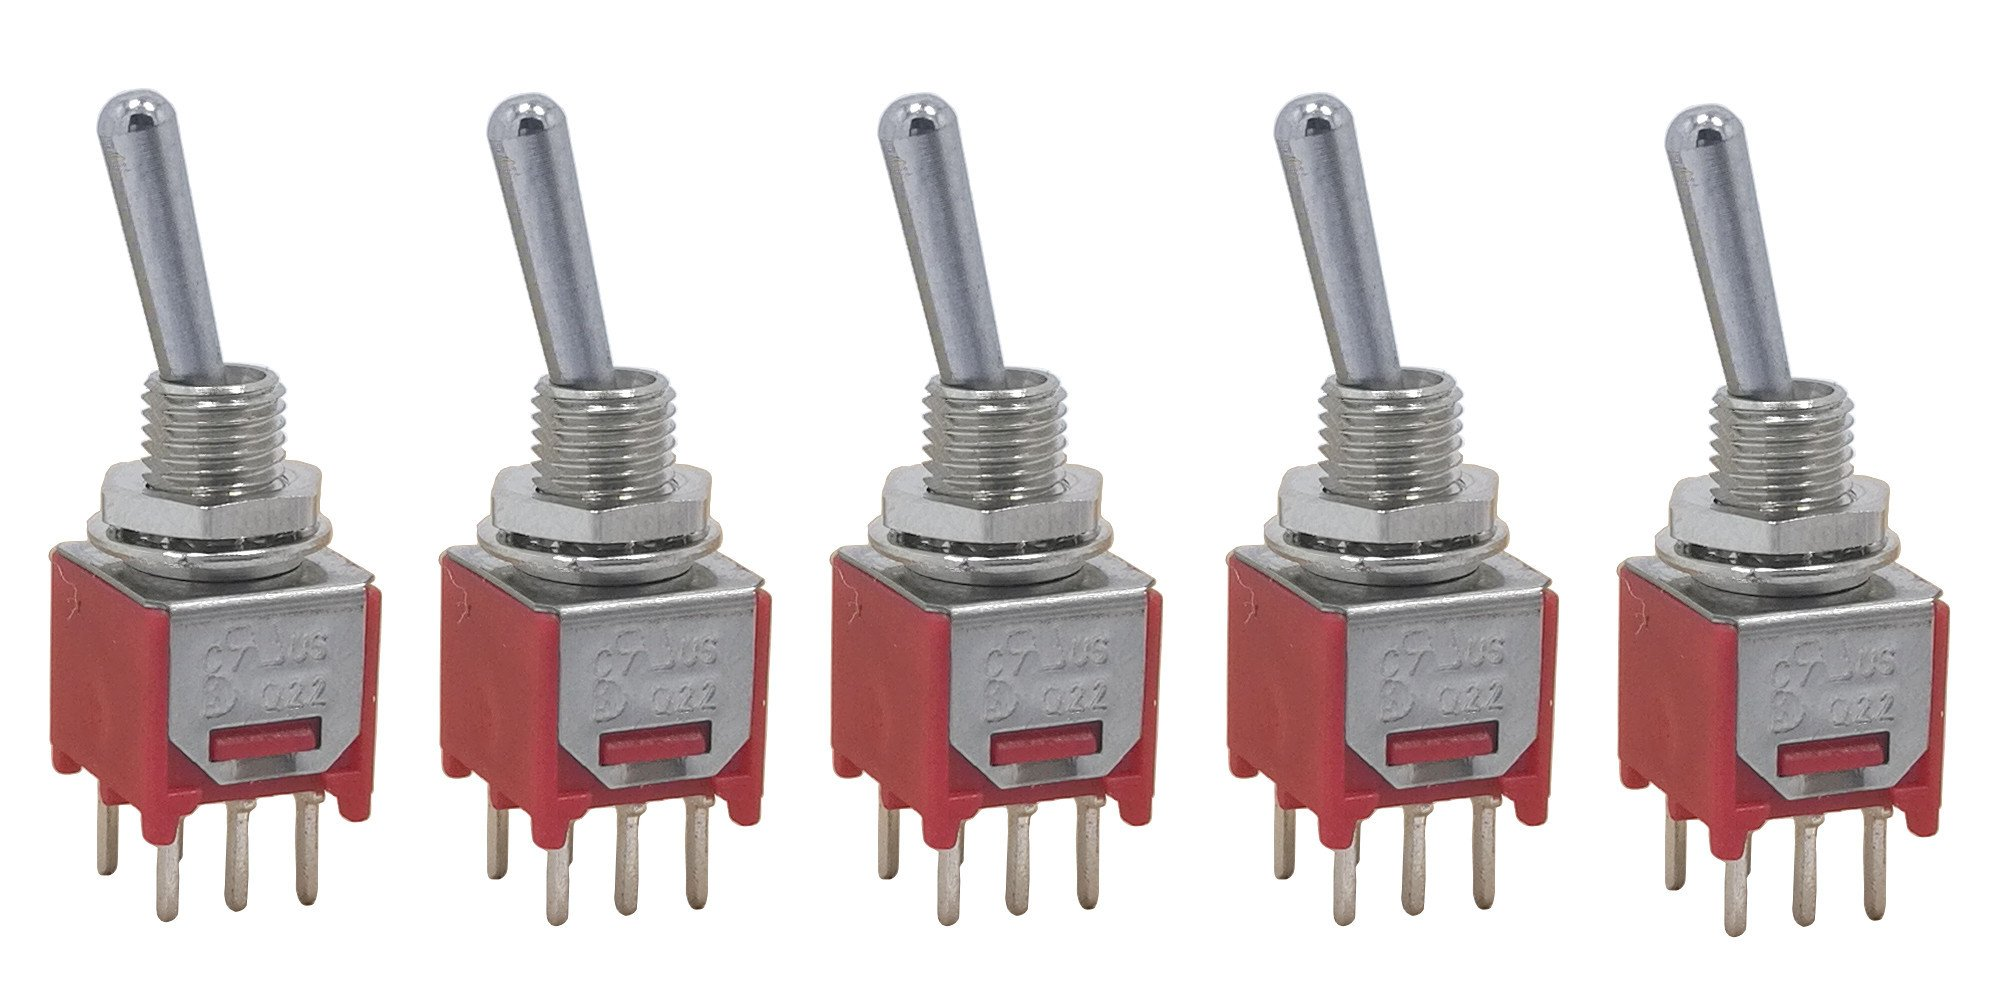 5 pcs DPDT Taiwan Subminiature sub mini ON OFF ON 3-way 6p Toggle Switch for PCB mount smt smd